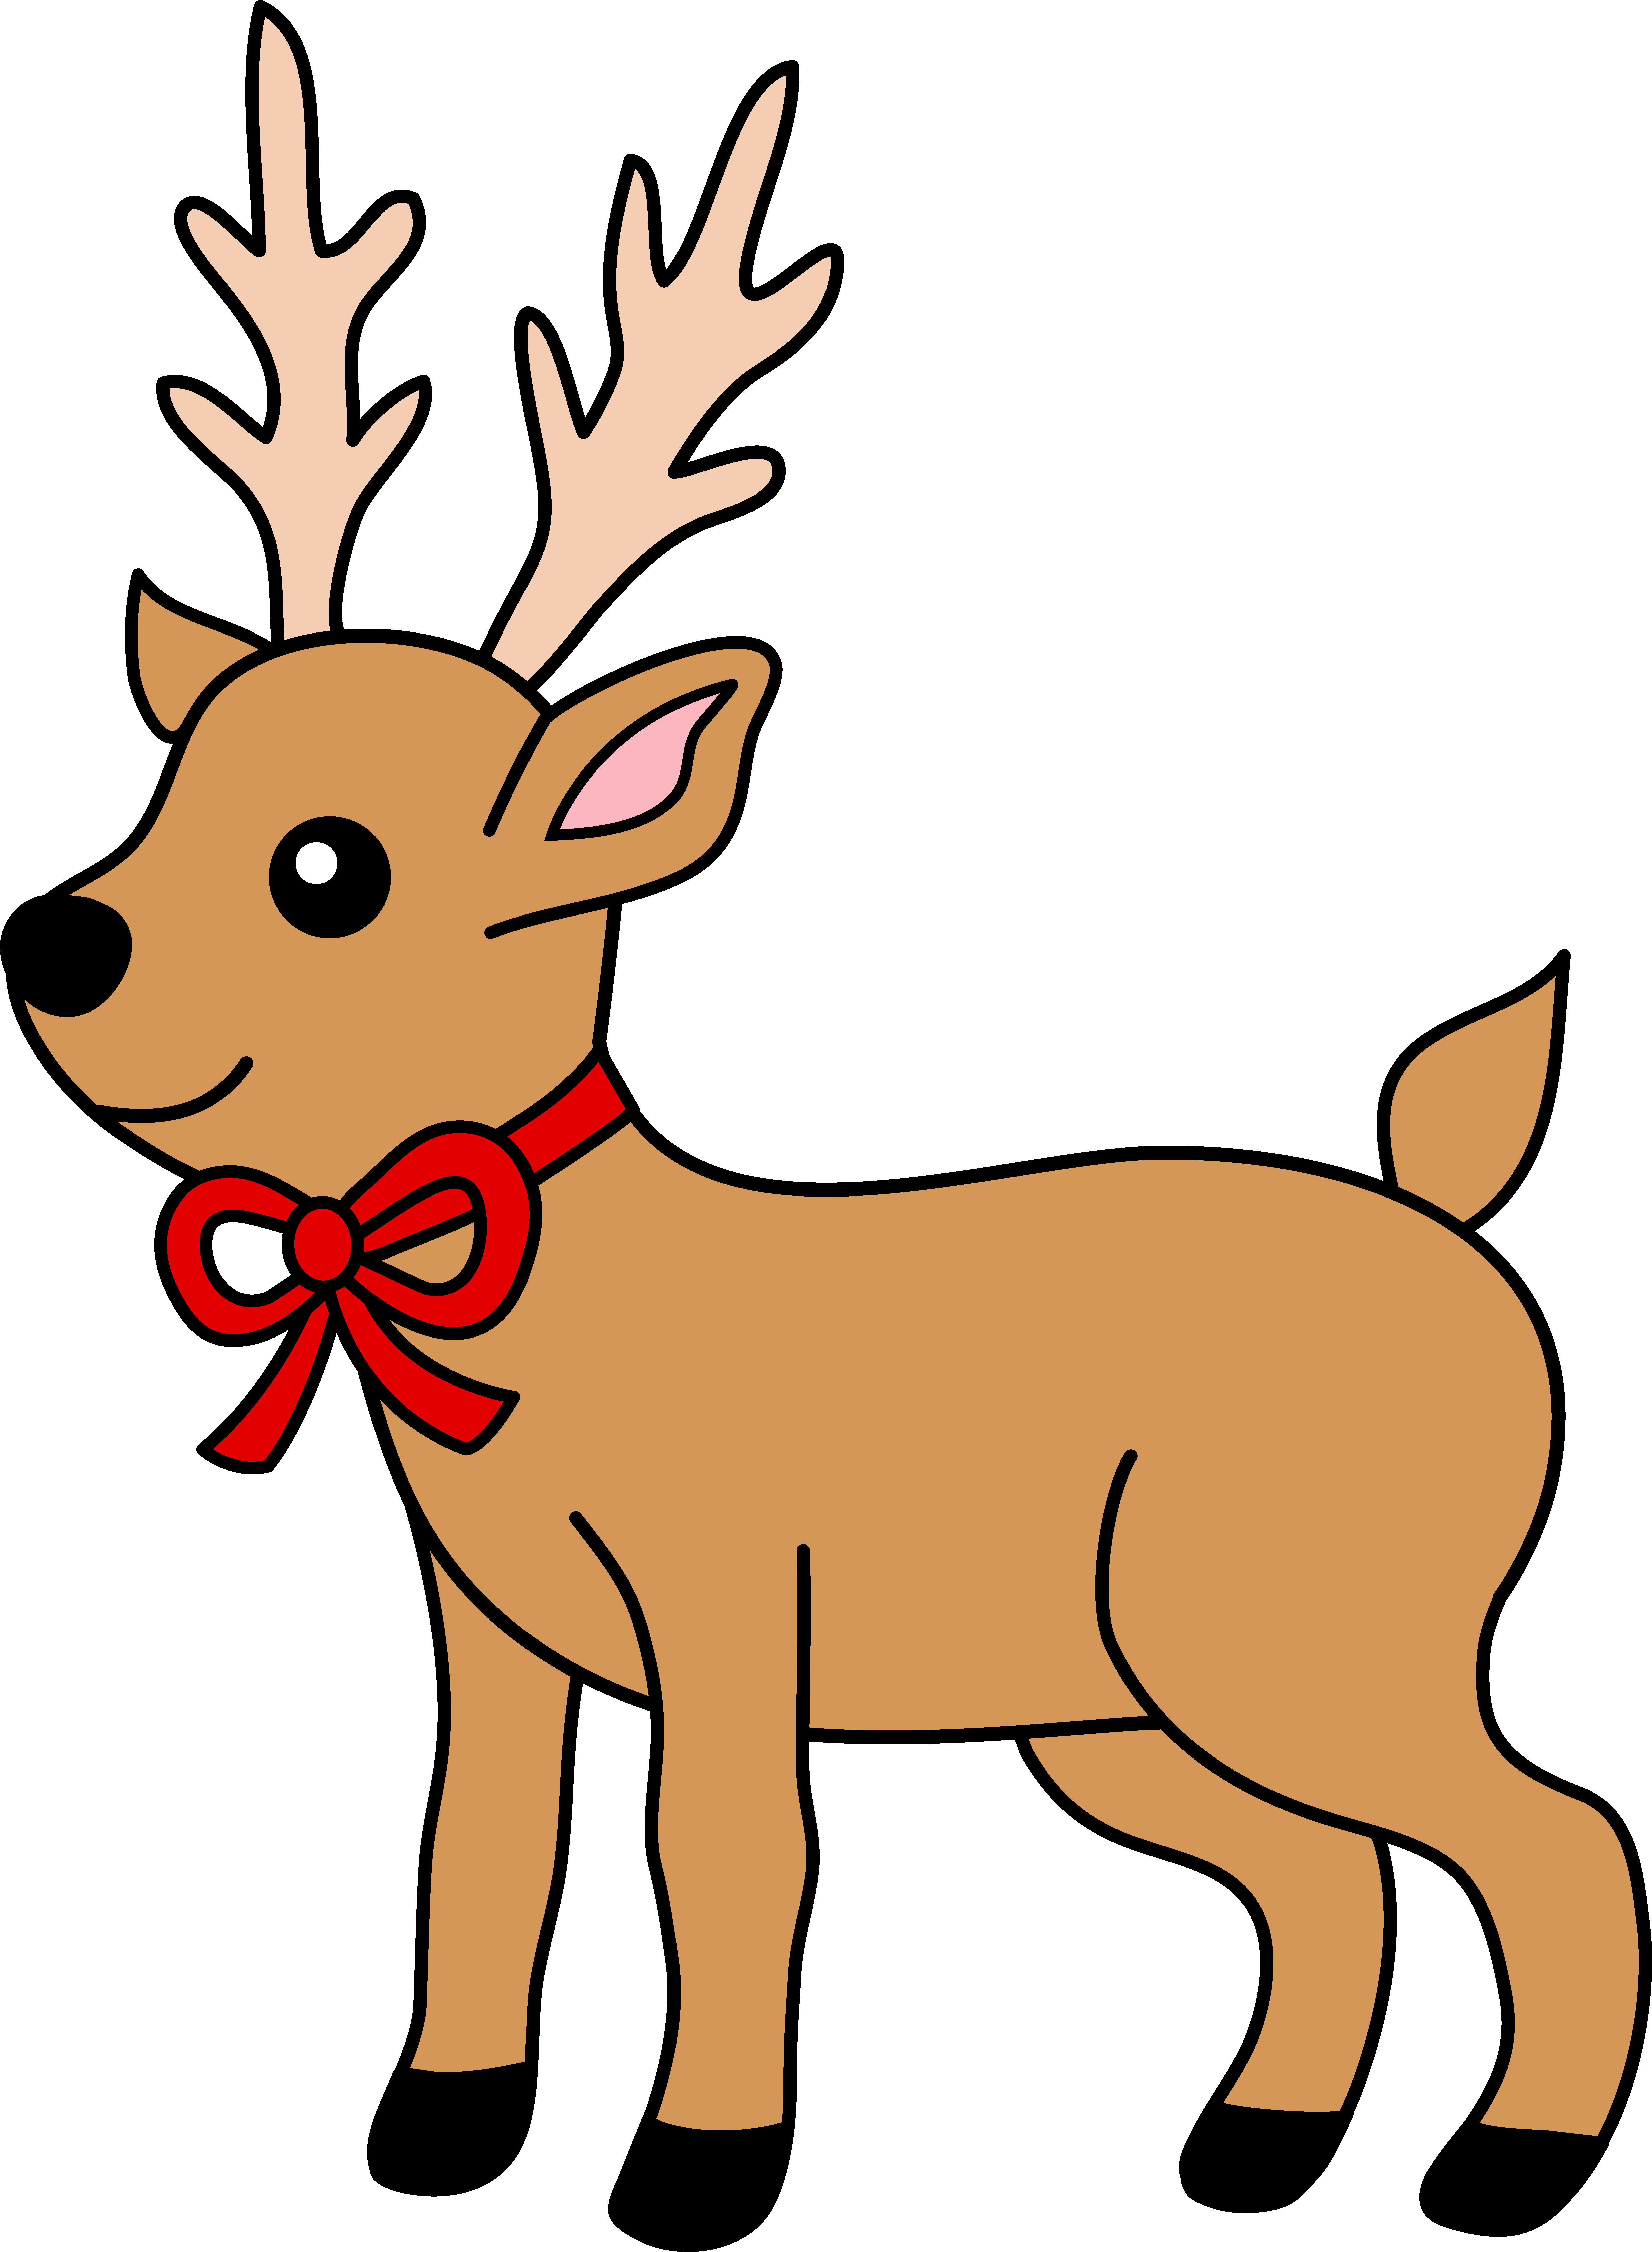 Free clipart christmas reindeer clip transparent Free Christmas Reindeer Clipart, Download Free Clip Art, Free Clip ... clip transparent